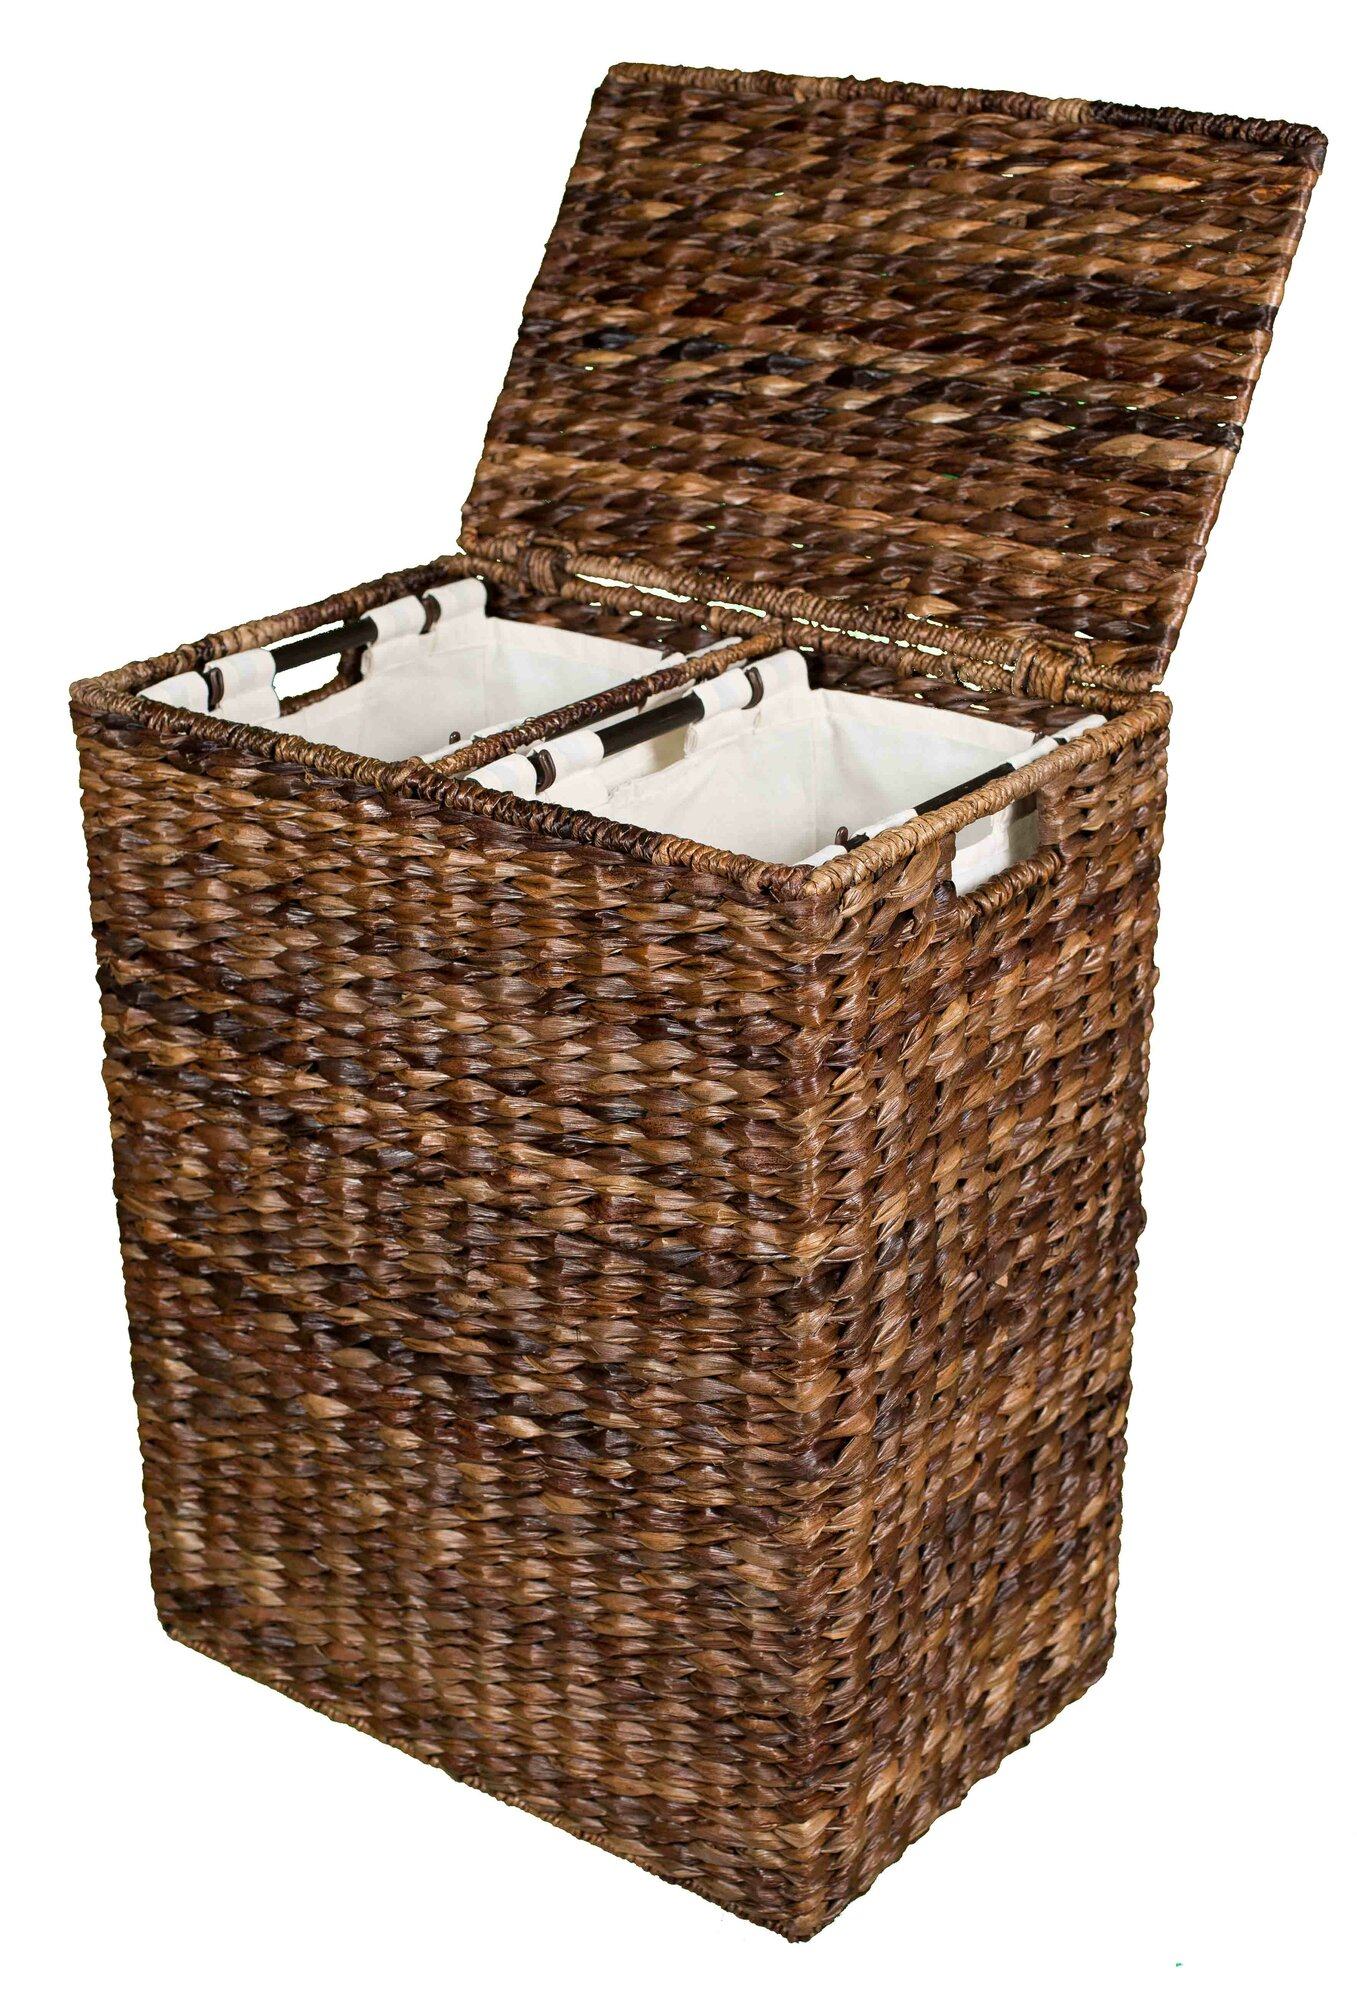 Divided laundry baskets can fit into your storage scheme throught the house. Organizing with a divided laundry basket can offer you an immediate impact in your home or office. The addition of a divided laundry sorter to your organizing system can make a big difference.